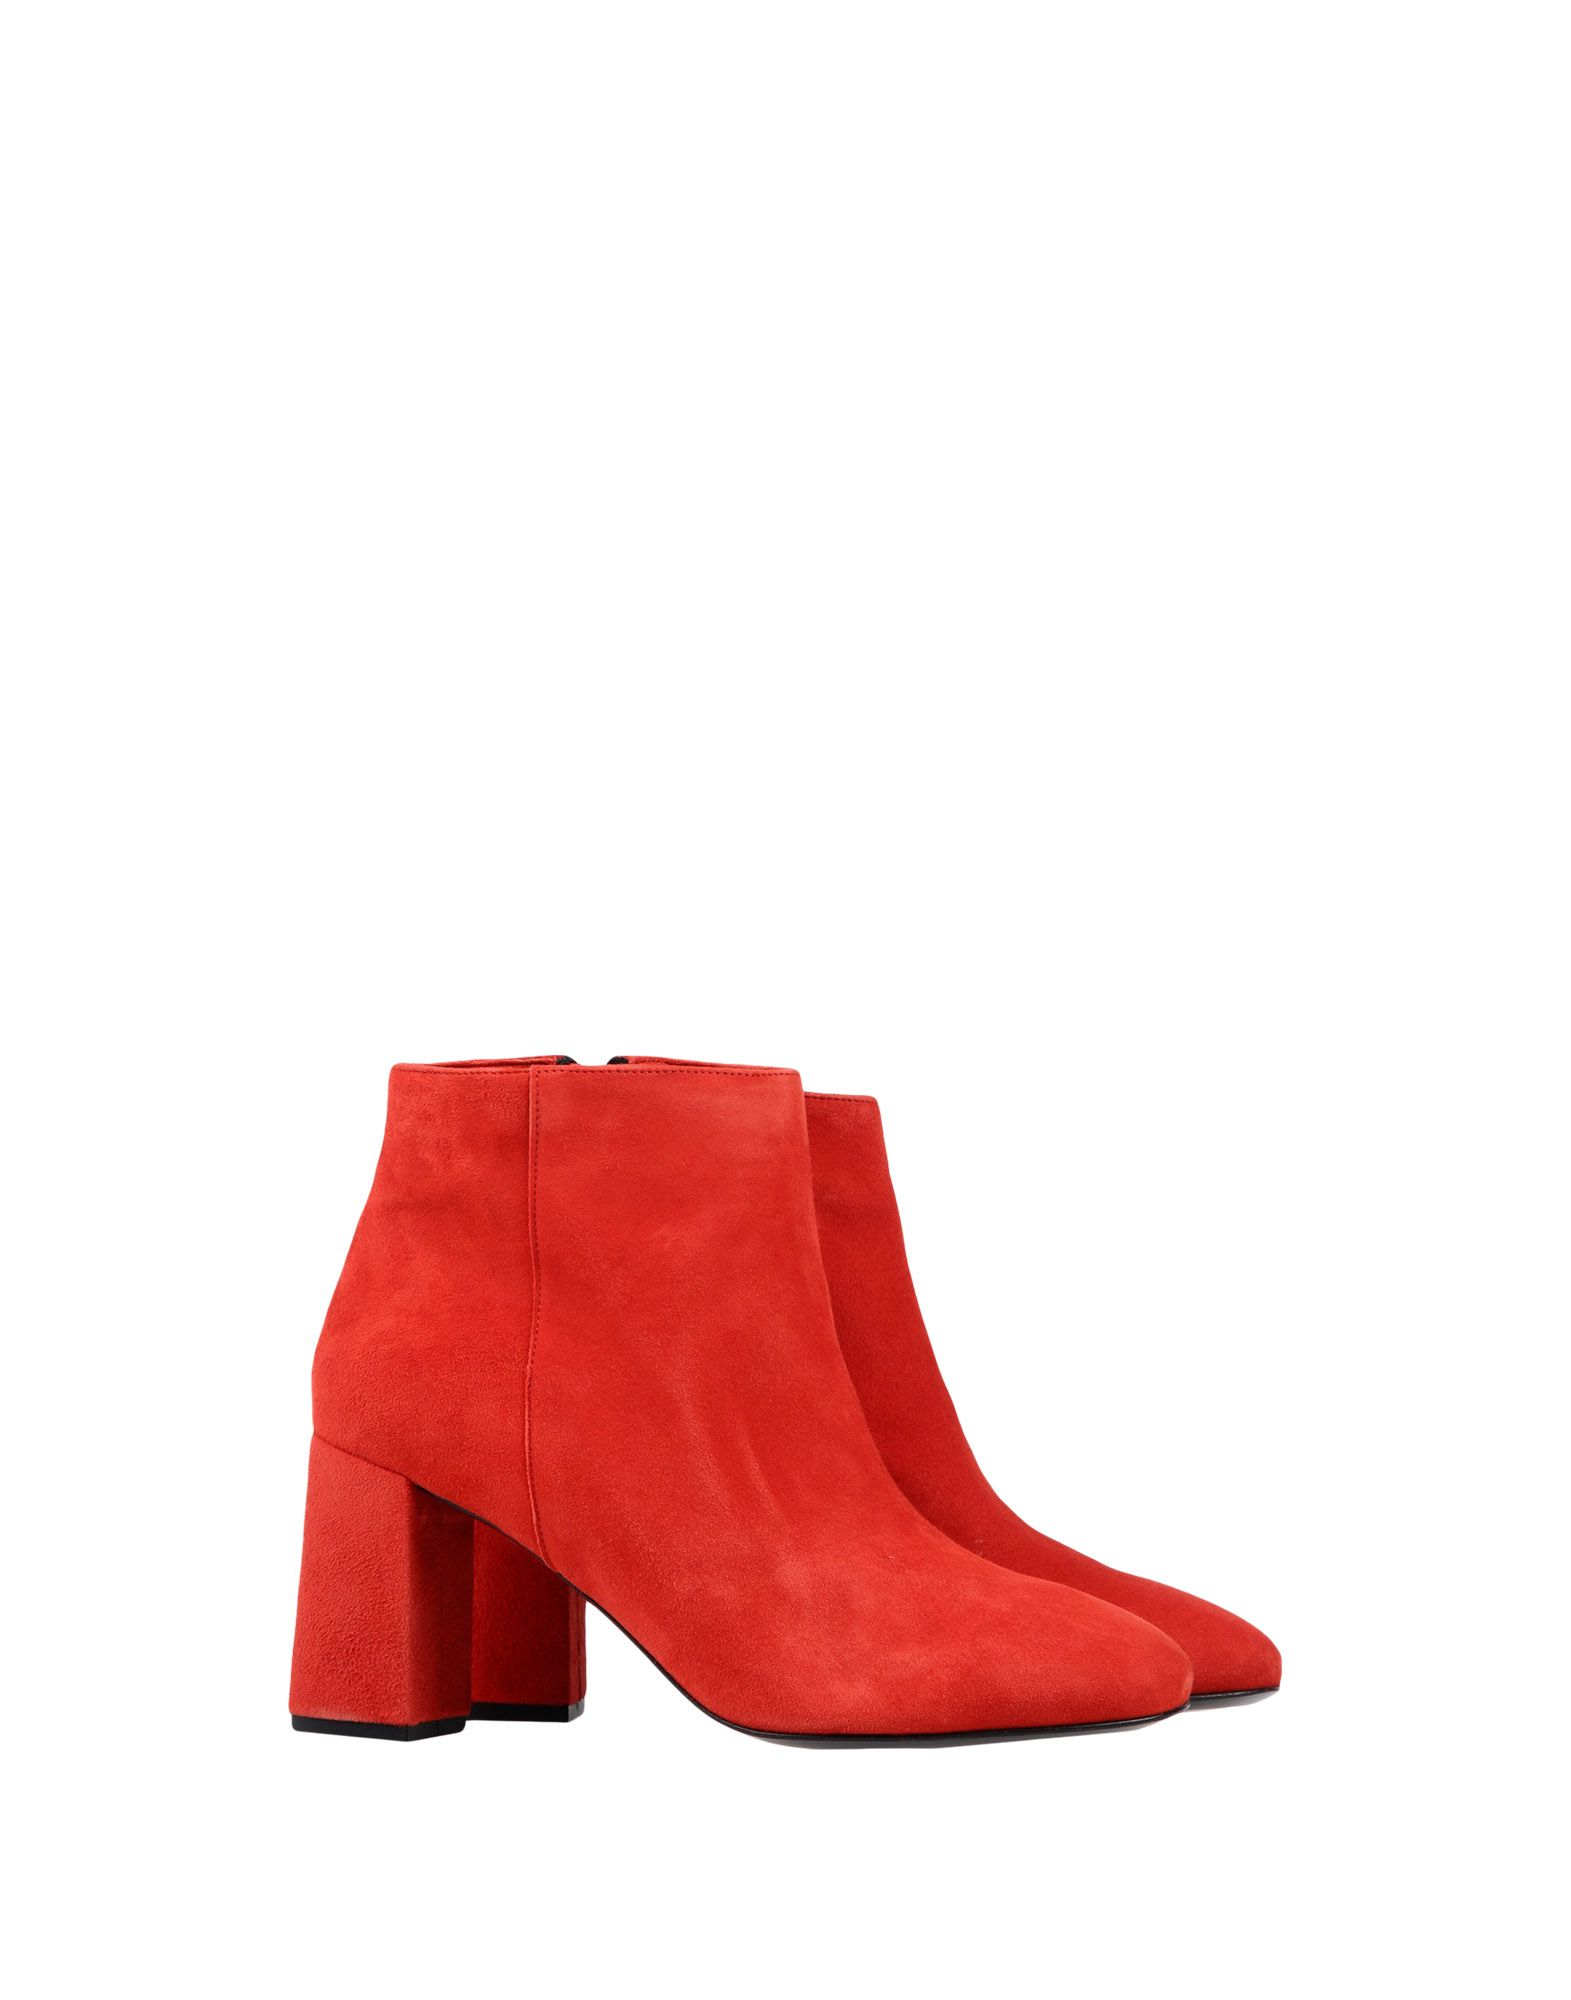 Bottine Twist & Tango Twiggy Boots - Femme - Bottines Twist & Tango sur